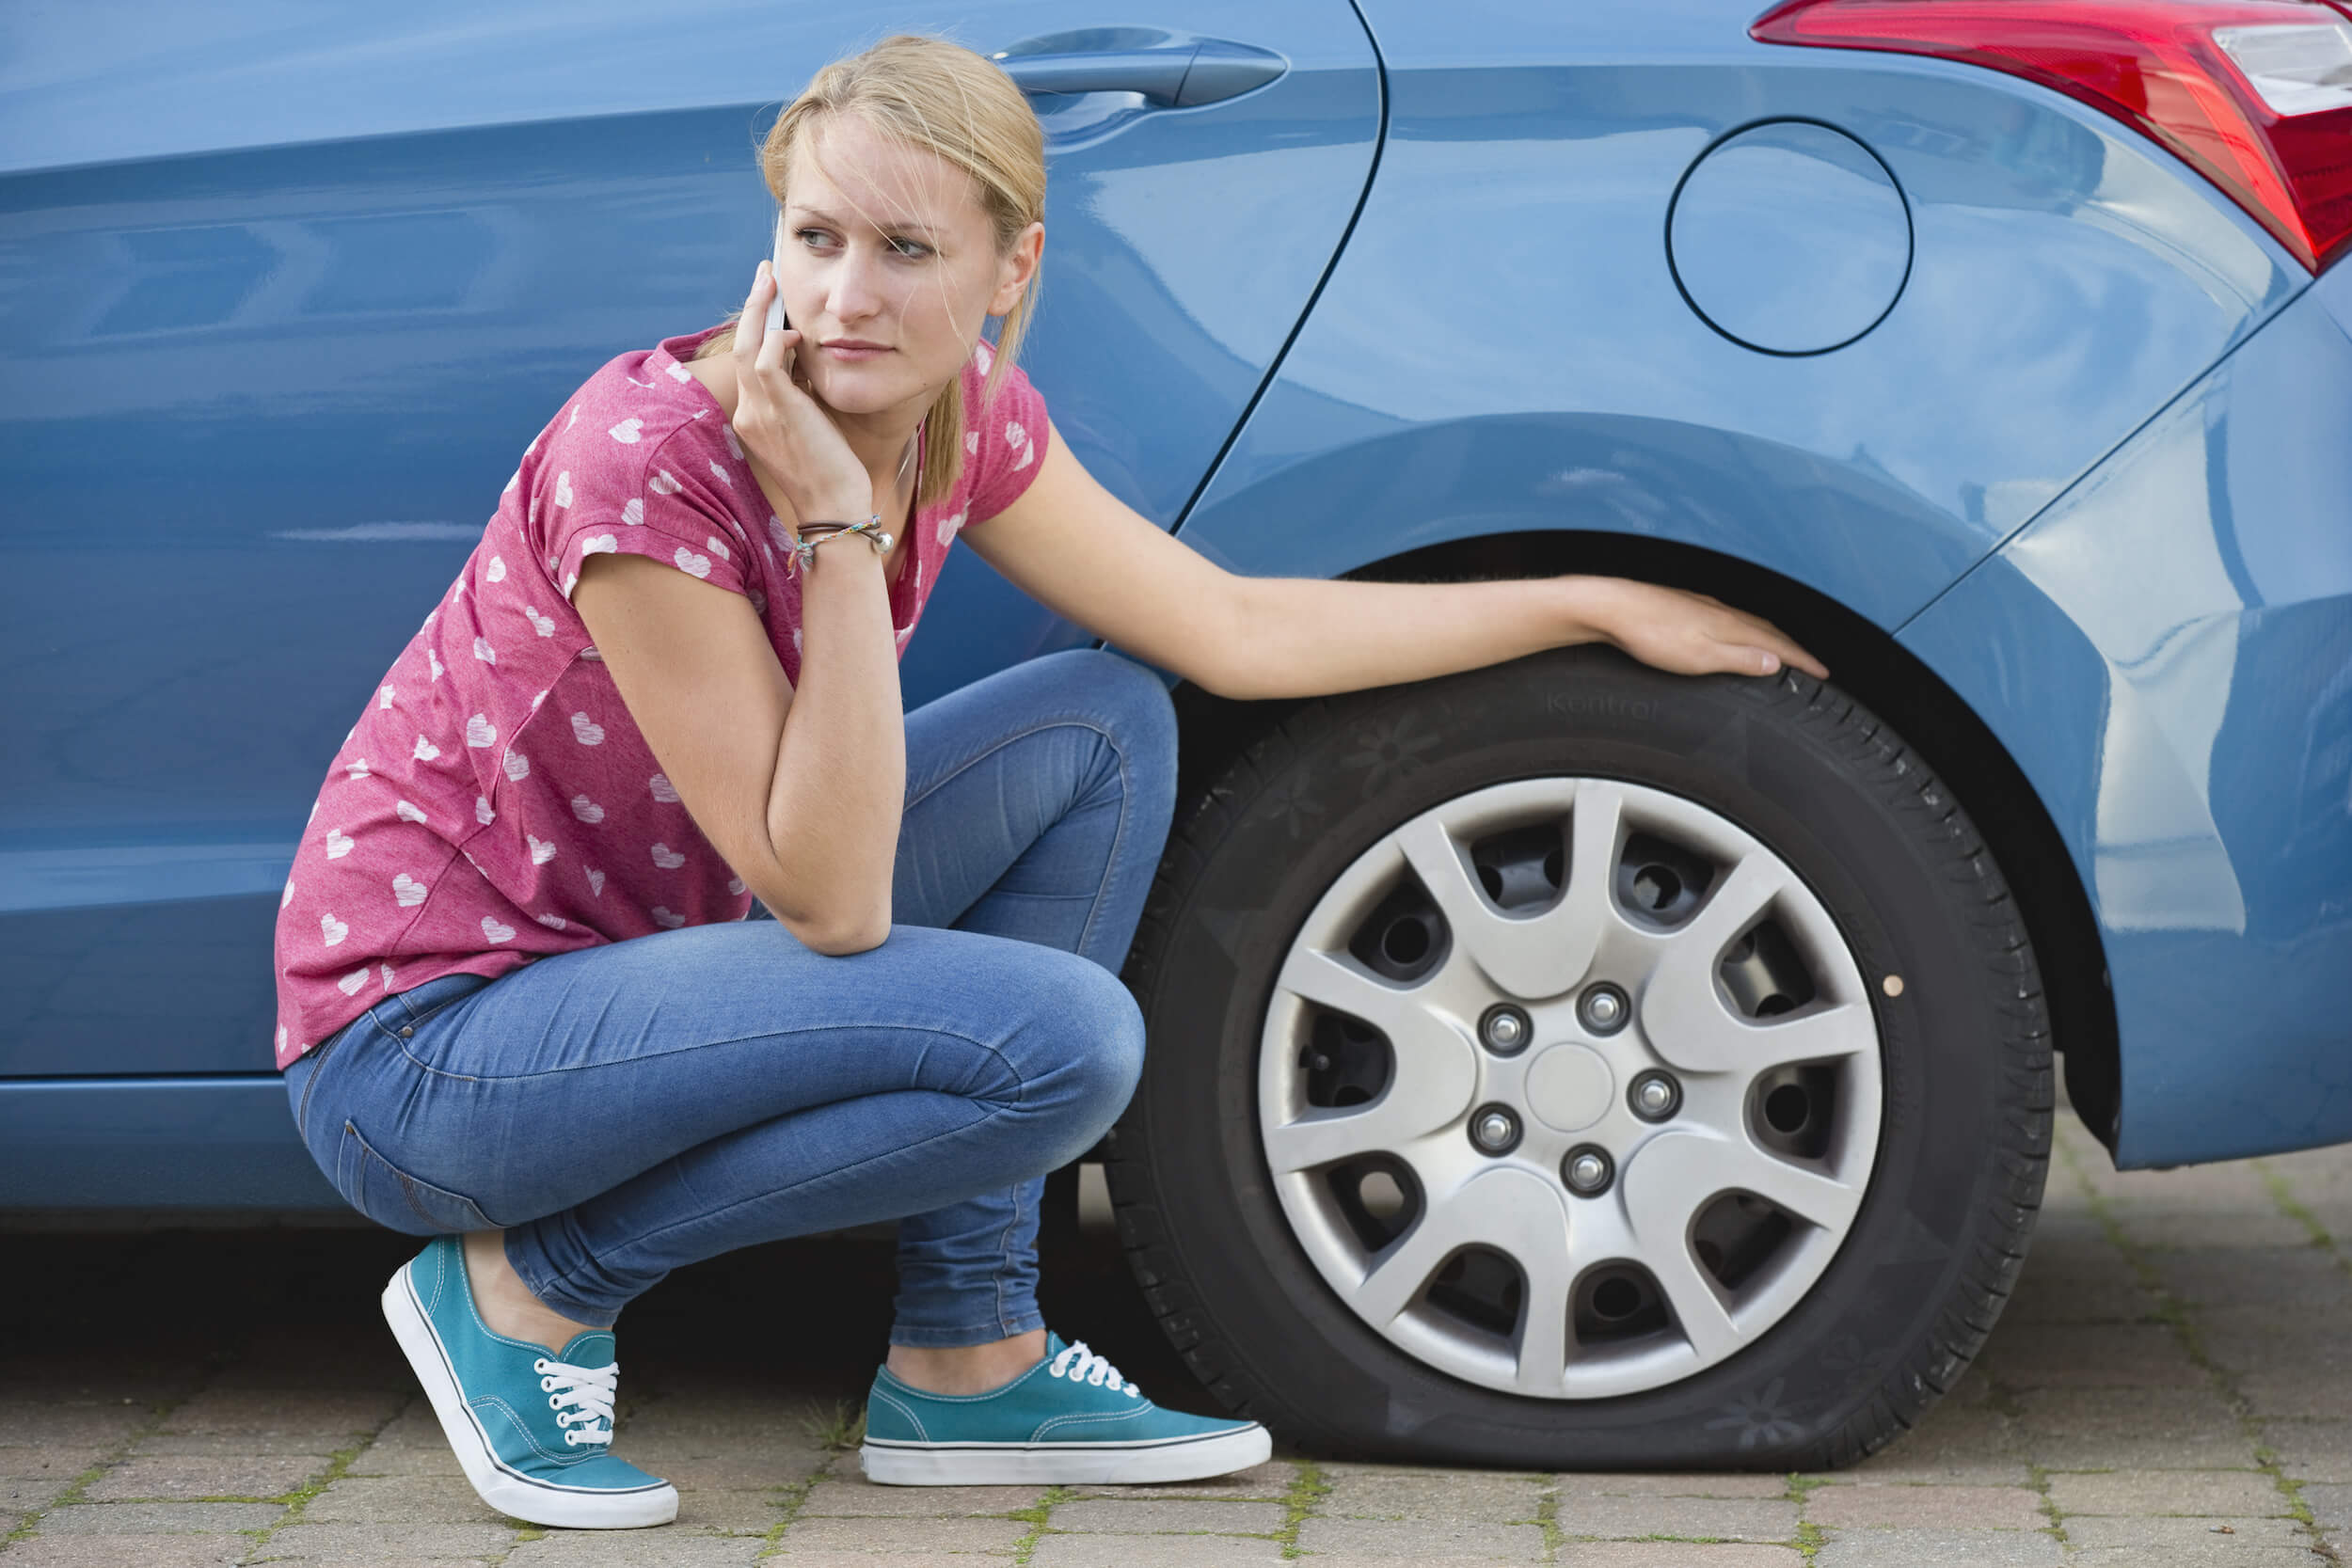 Emergency Tyre Services in Worthing